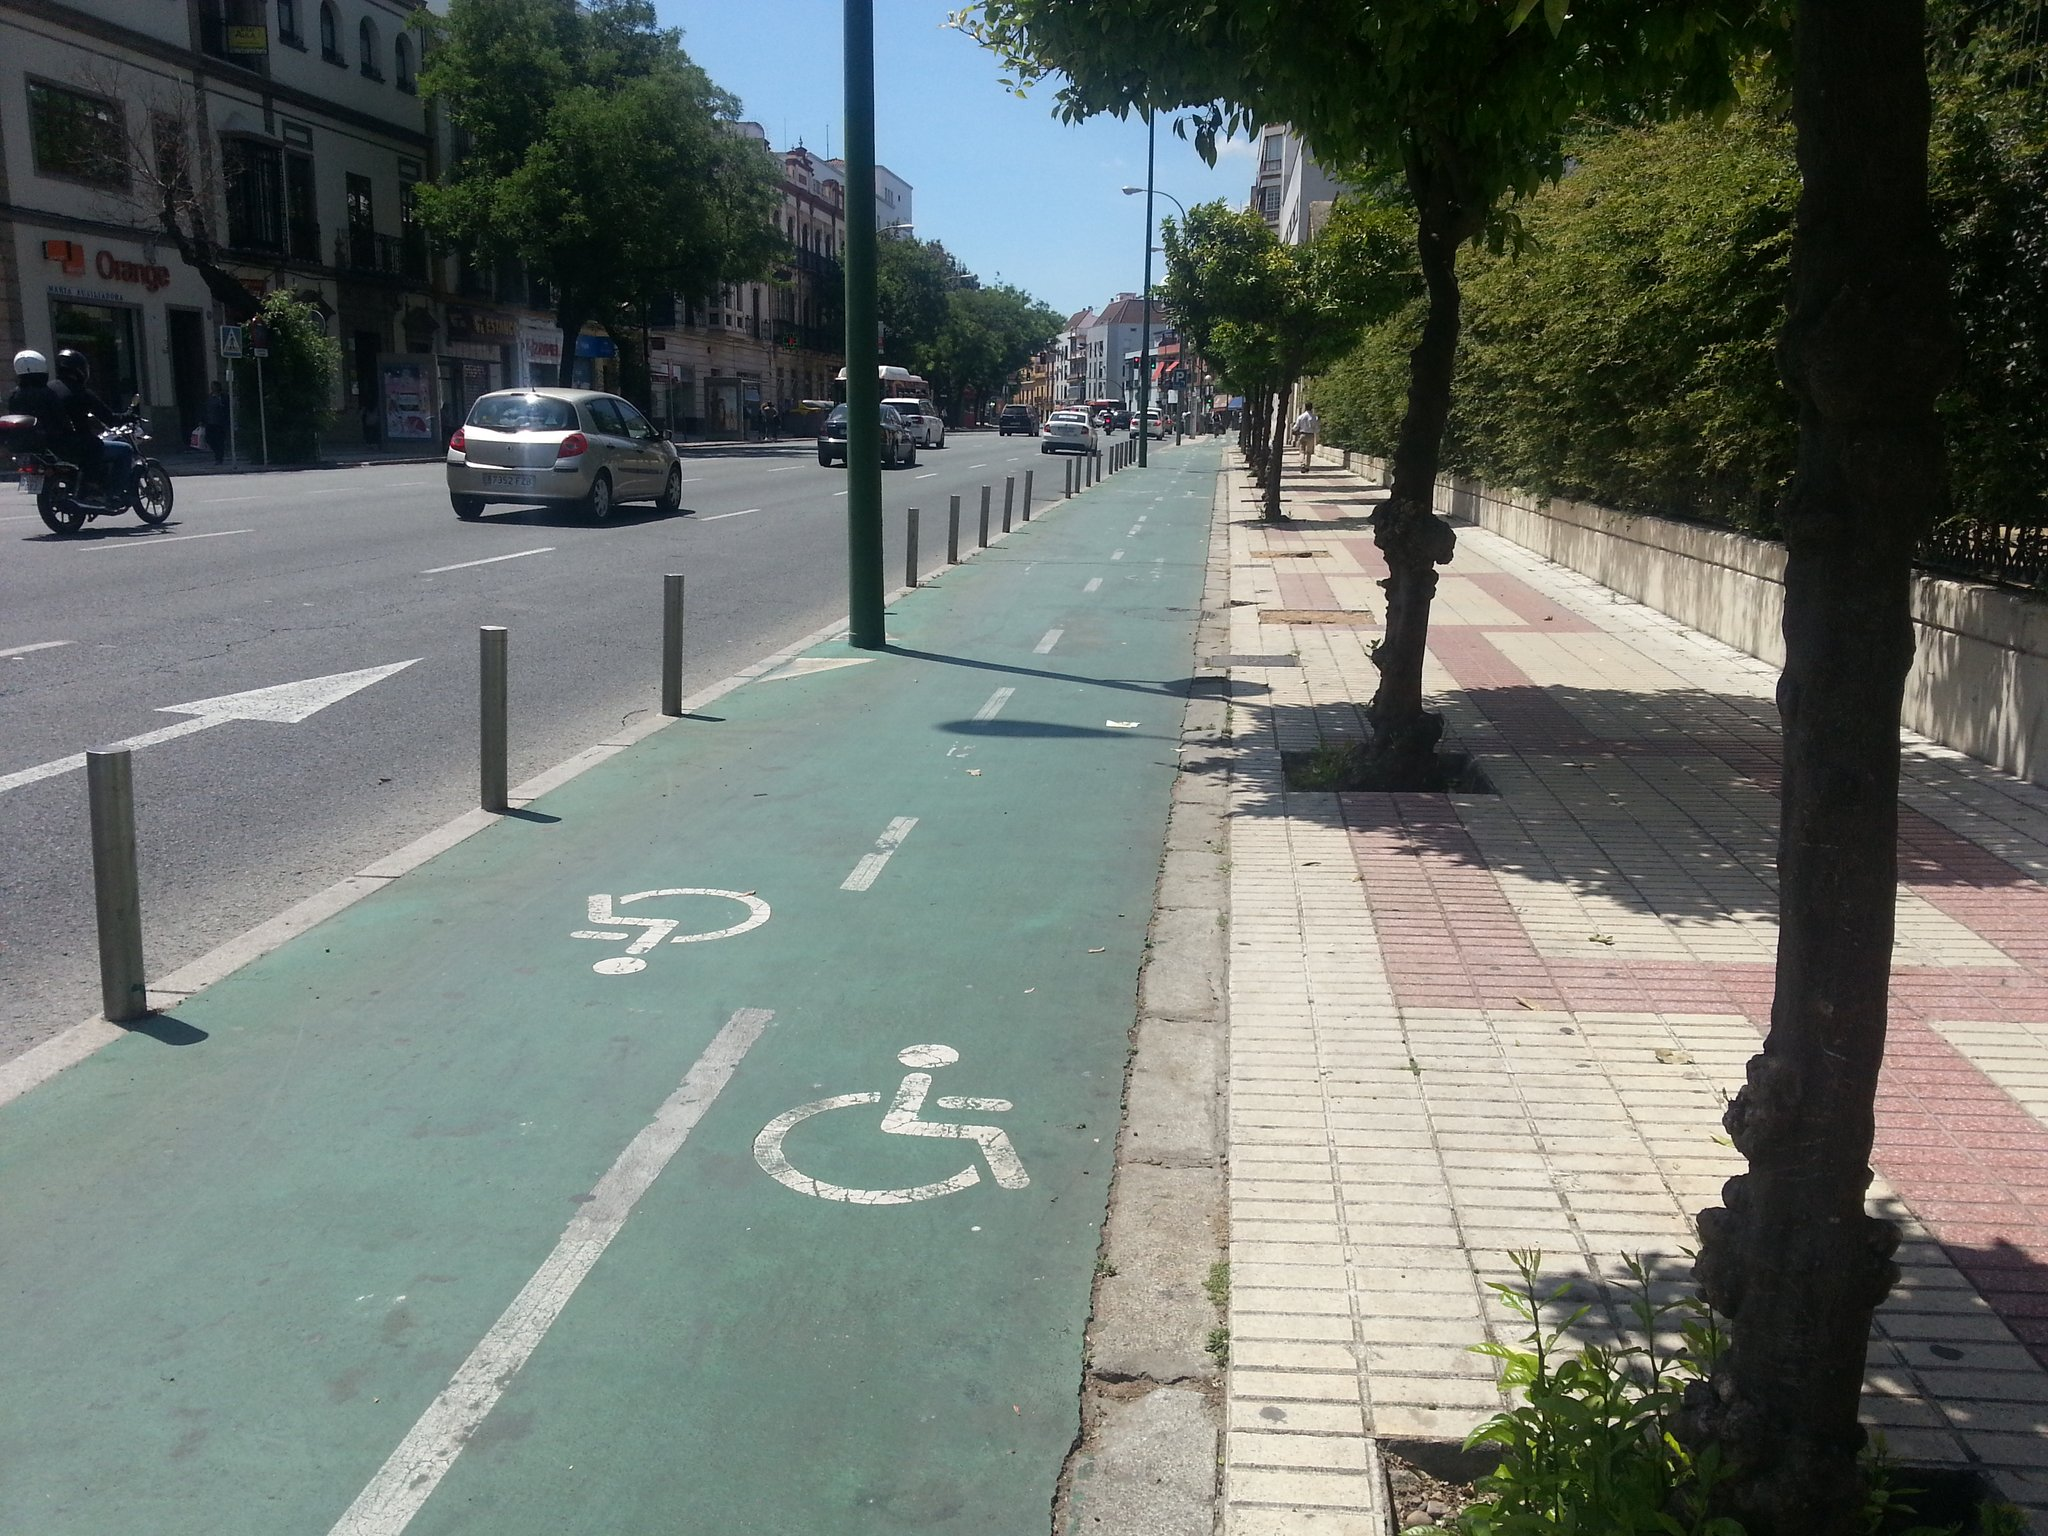 Not just a bike lane, a wheelchair lane #5gomadinSeville https://t.co/hnU5IY0REX